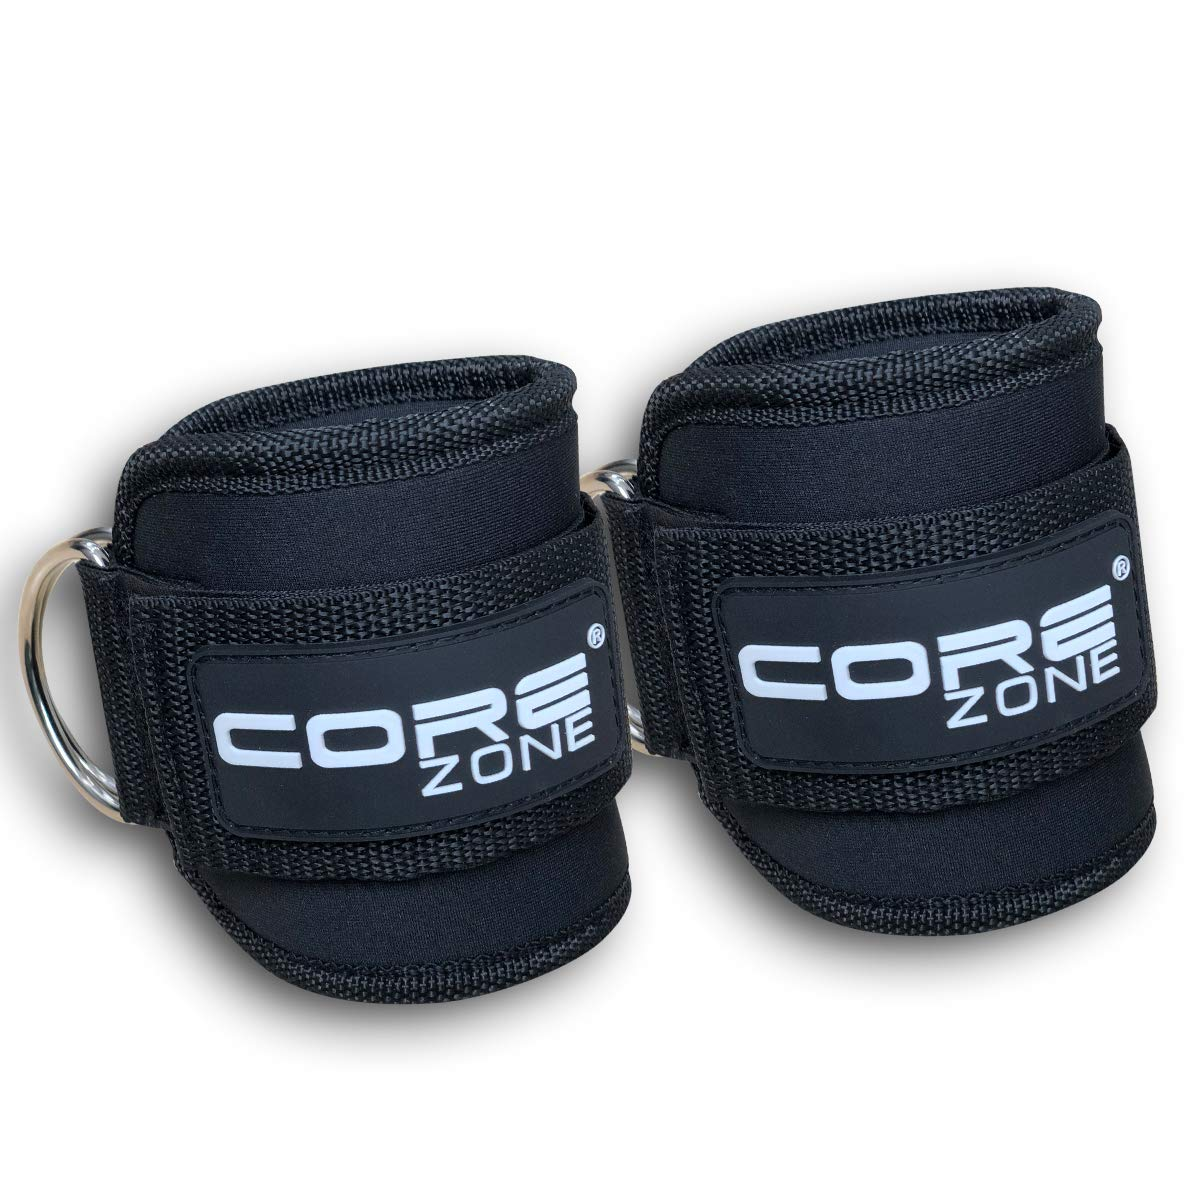 Top Fitness Adjustable D-Ring Ankle Straps|Sturdy Leg//Wrist Extension Straps Weightlifting,Leg /& Butt Lifter Gym Straps for Men /& Women COREZONE Ankle Straps For Cable Machine